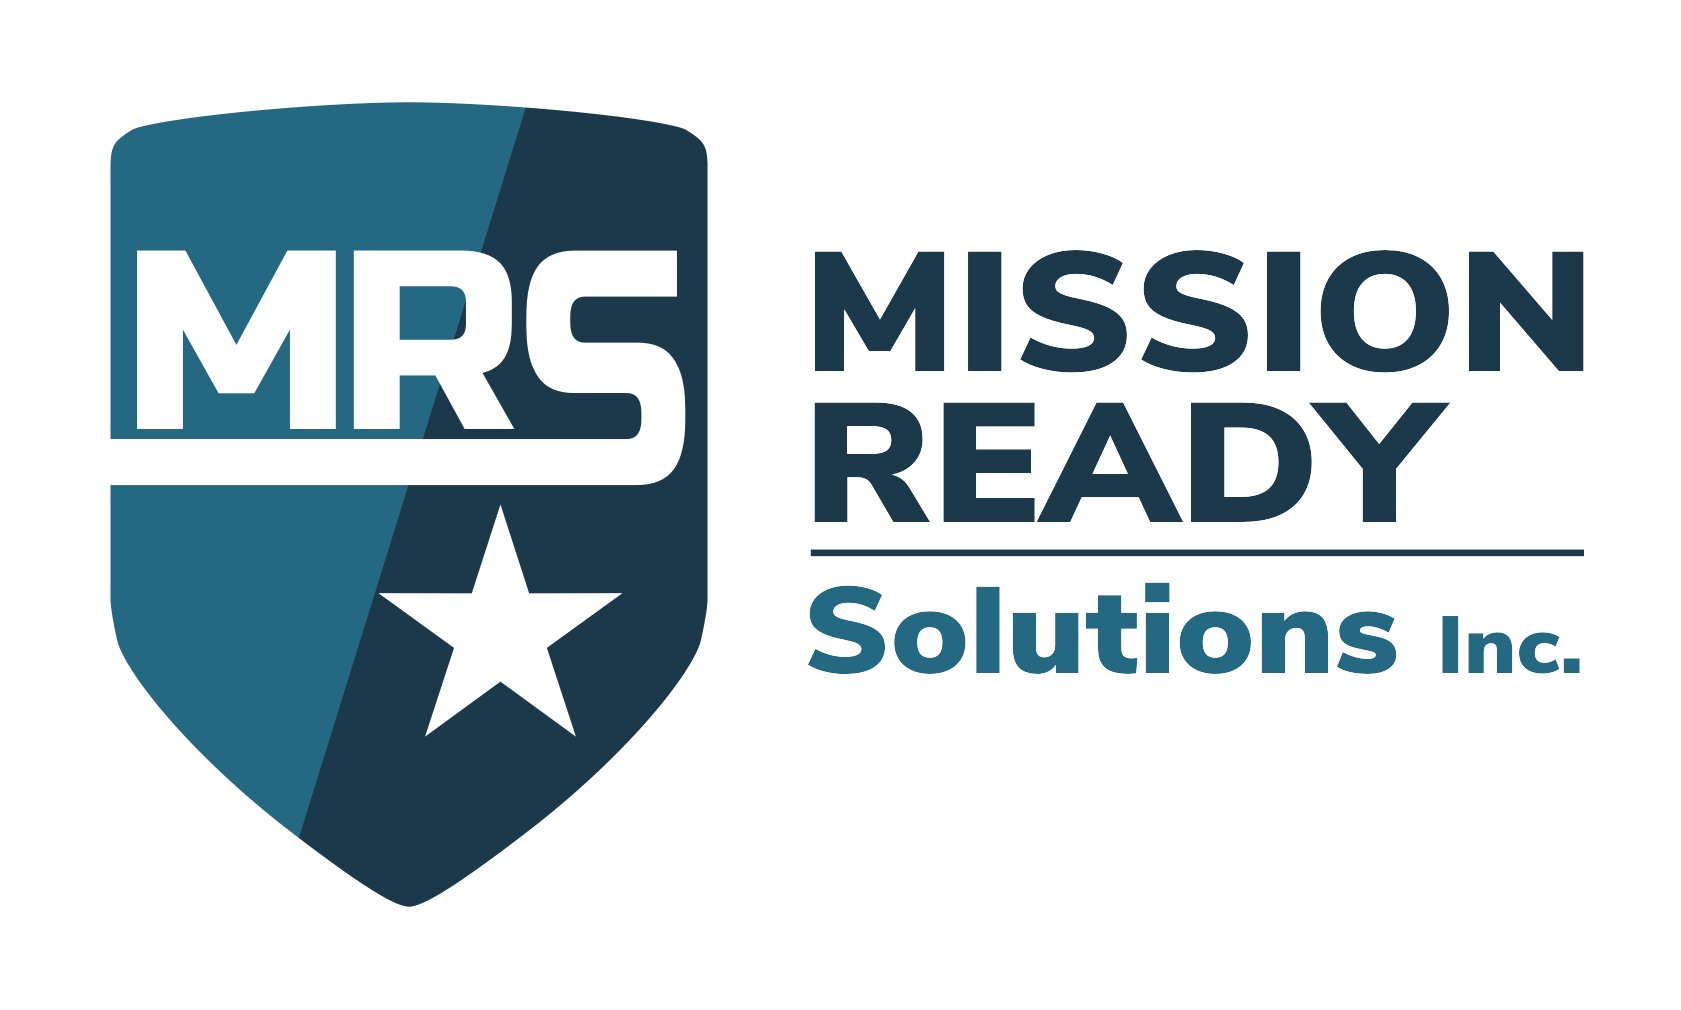 Mission Ready Commences Trading on the OTCQB® Venture Market